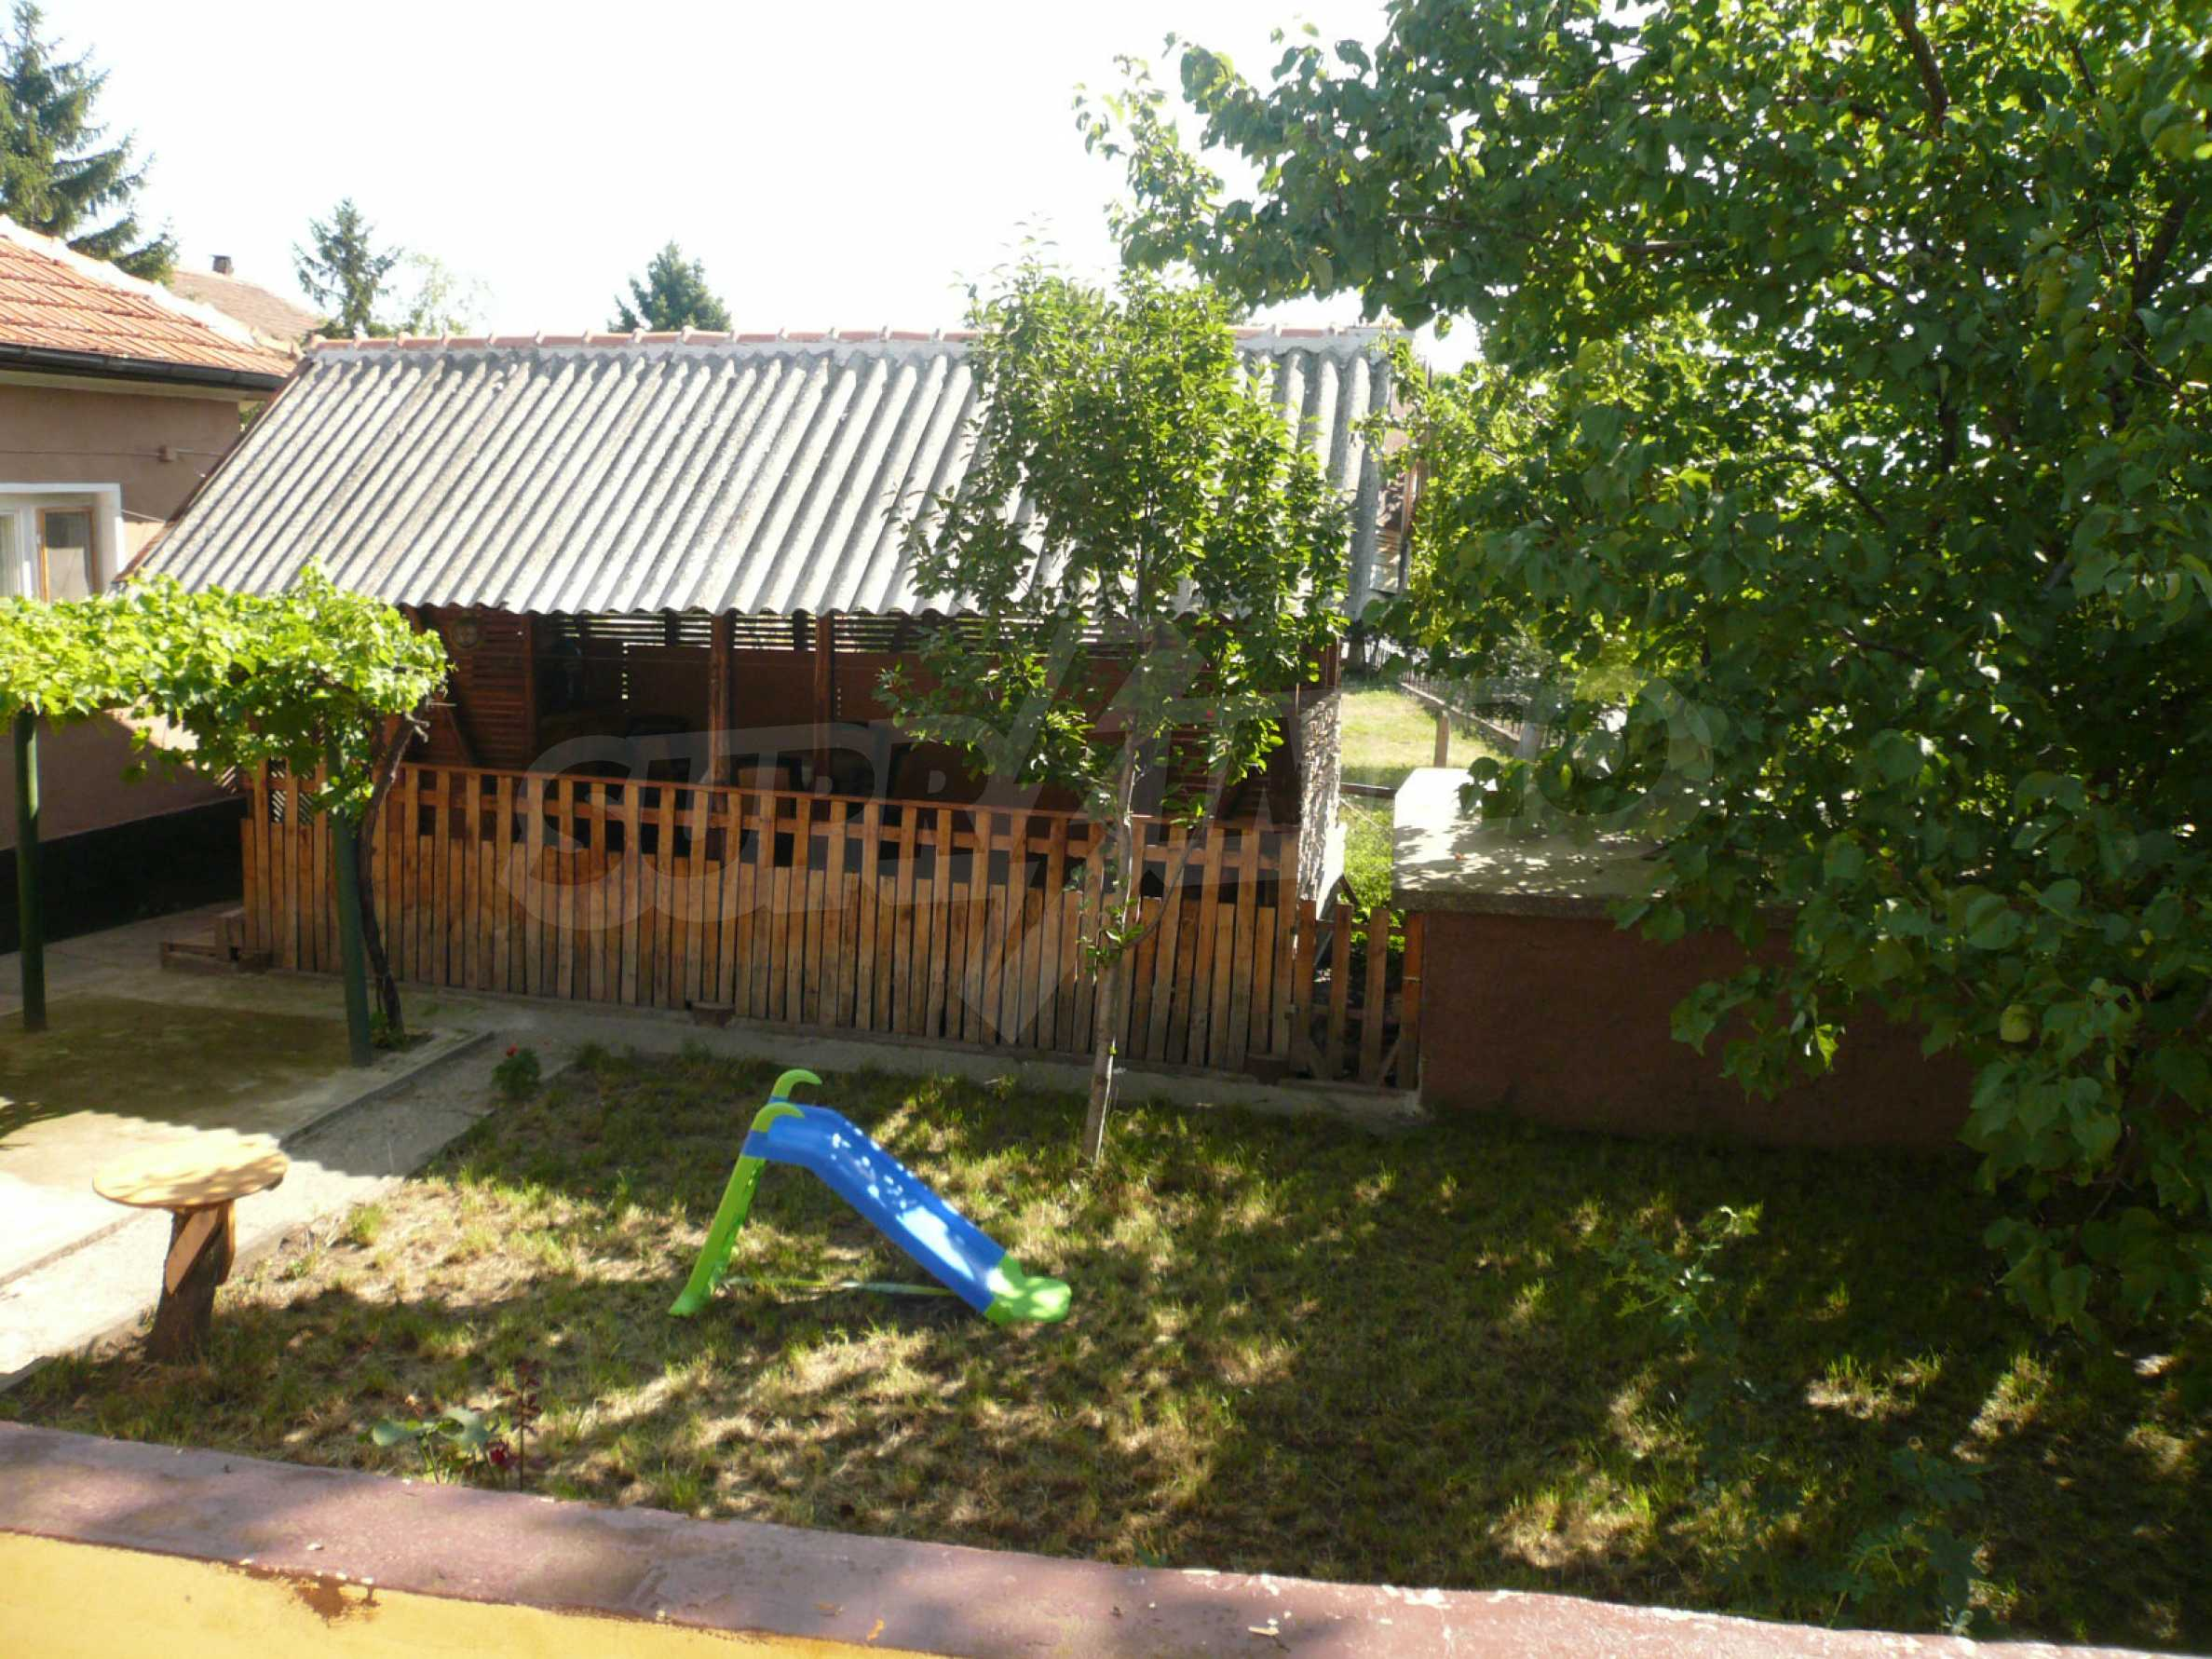 Rural houses with garden 12 km from Vidin 3